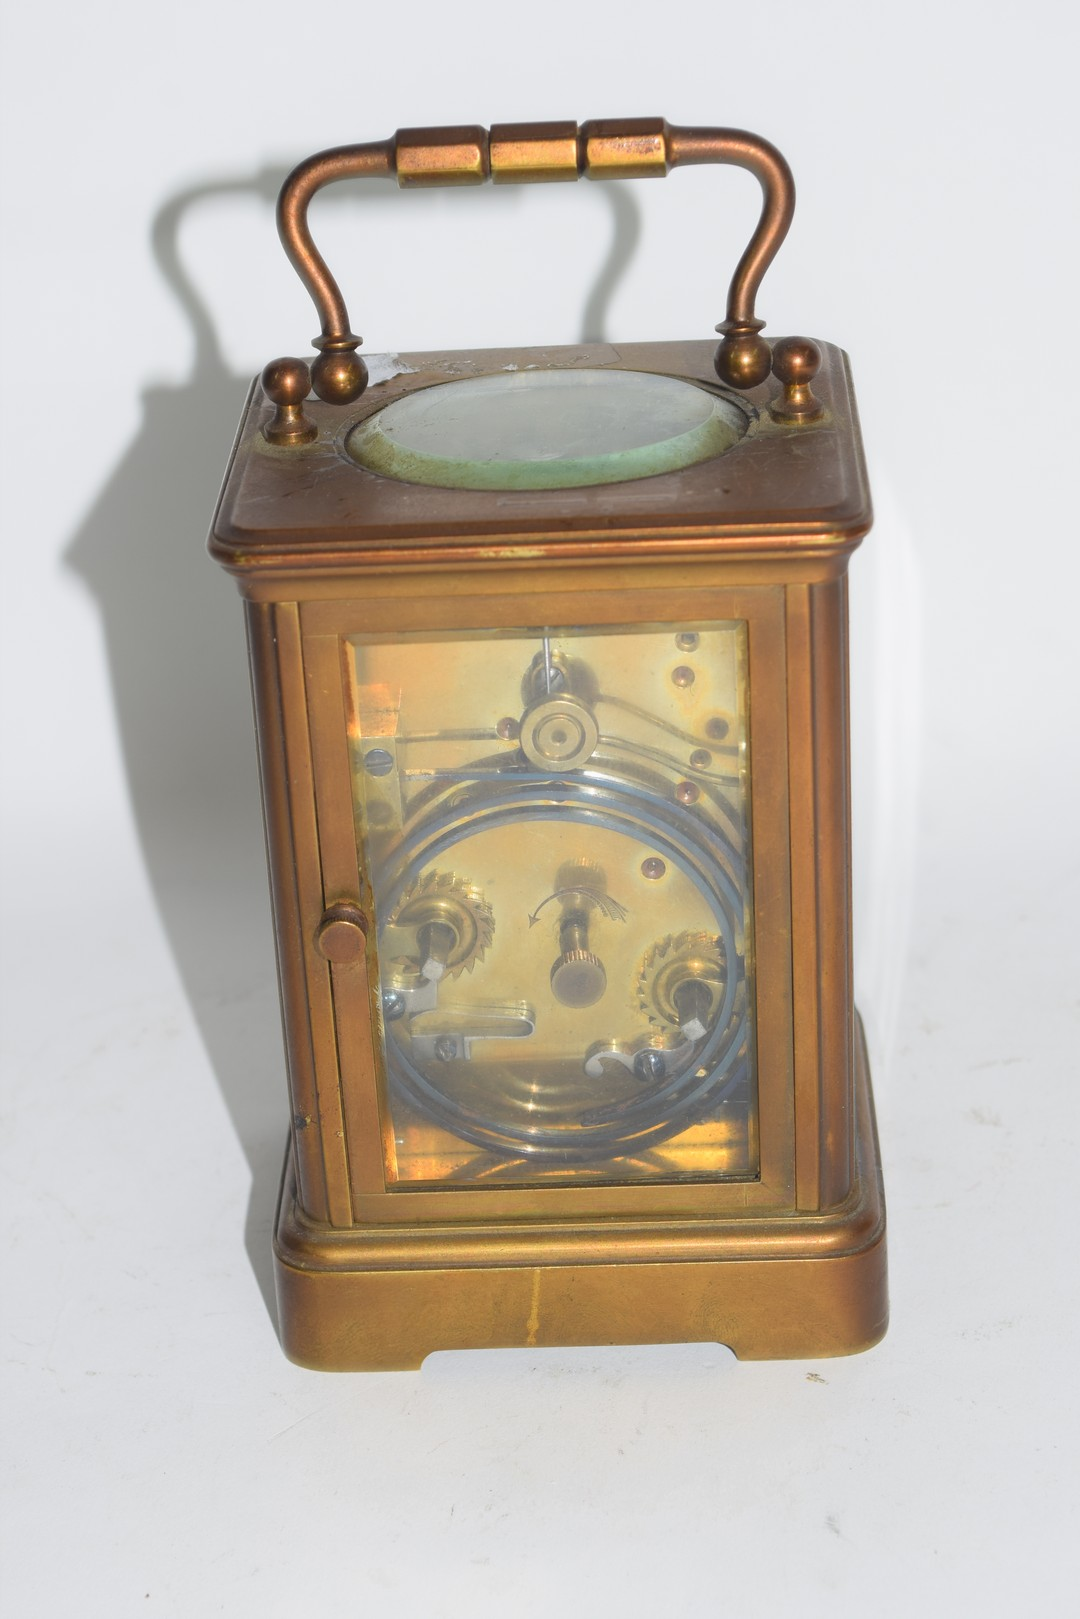 Brass carriage clock - Image 3 of 5